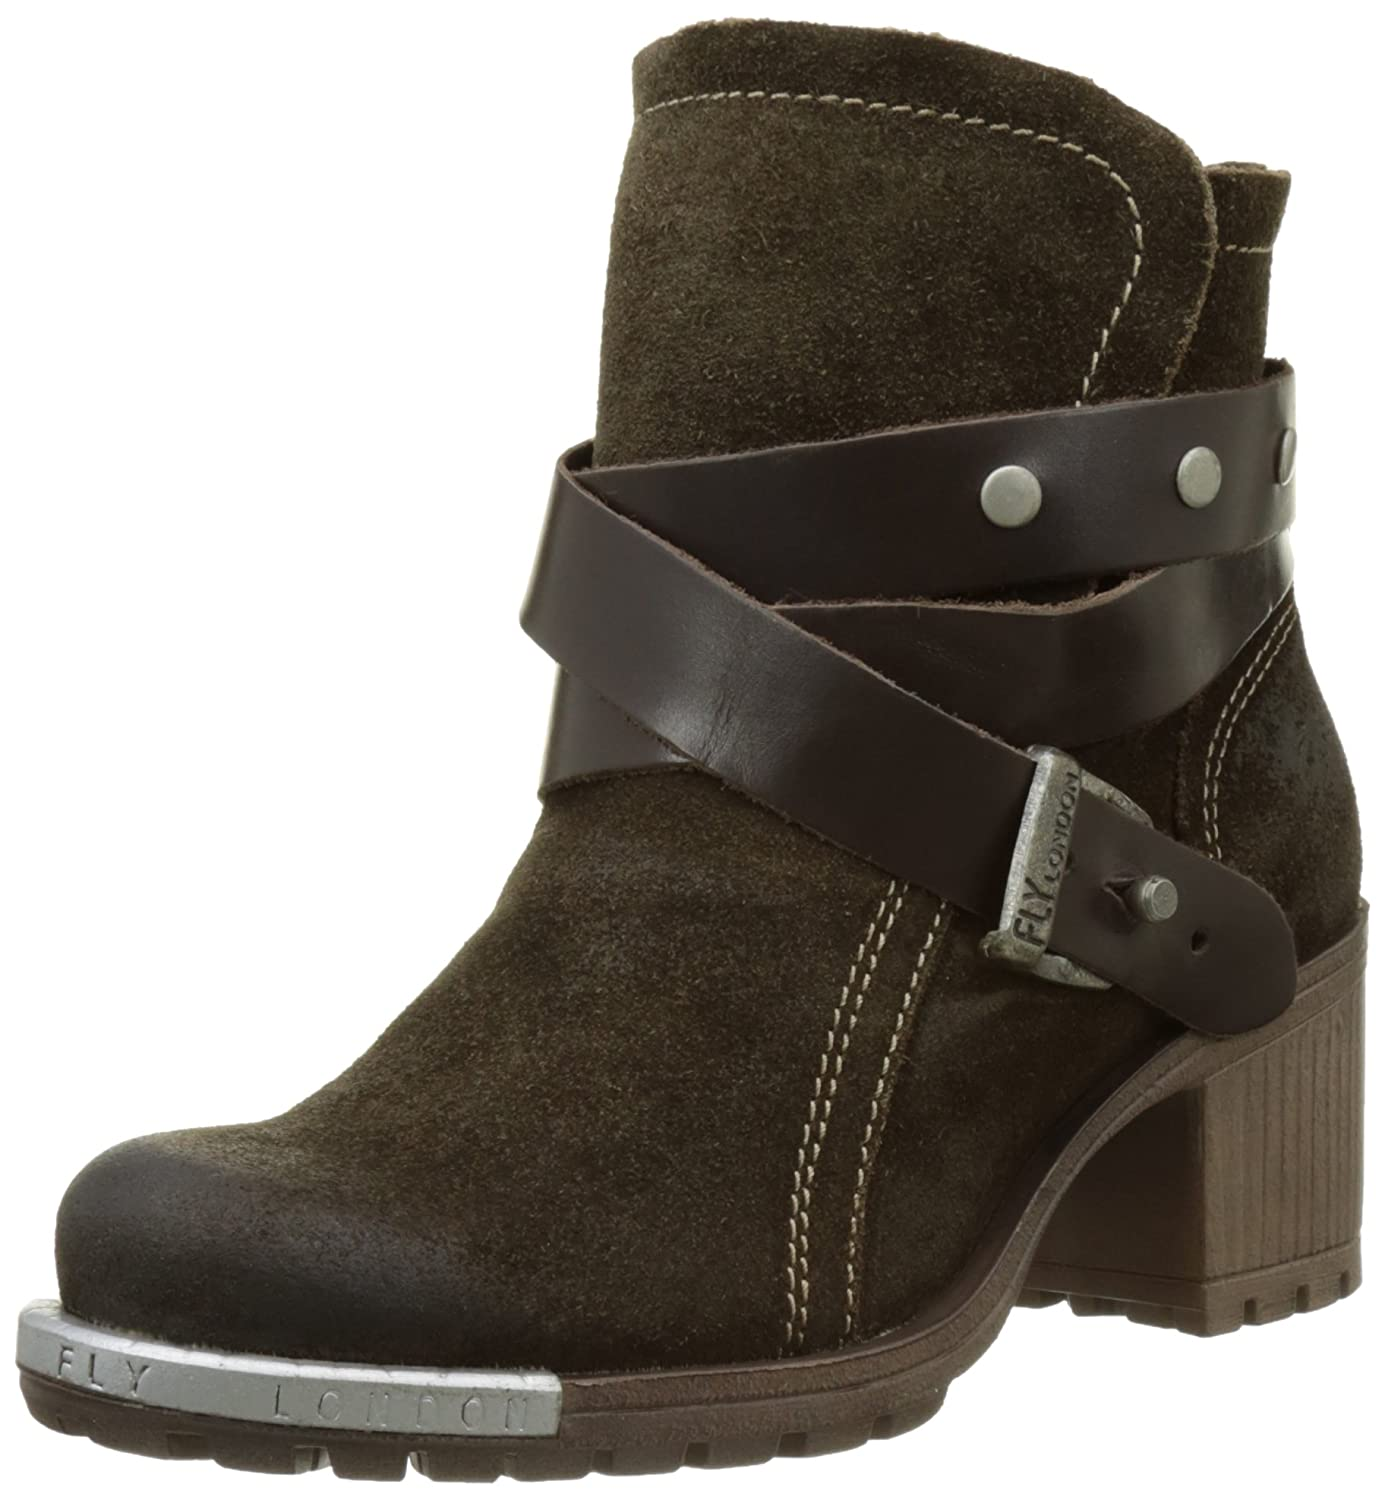 FLY London LOK - Botas estilo motero mujer36 EU|Marrón (Sludge/Dk.brown 007)